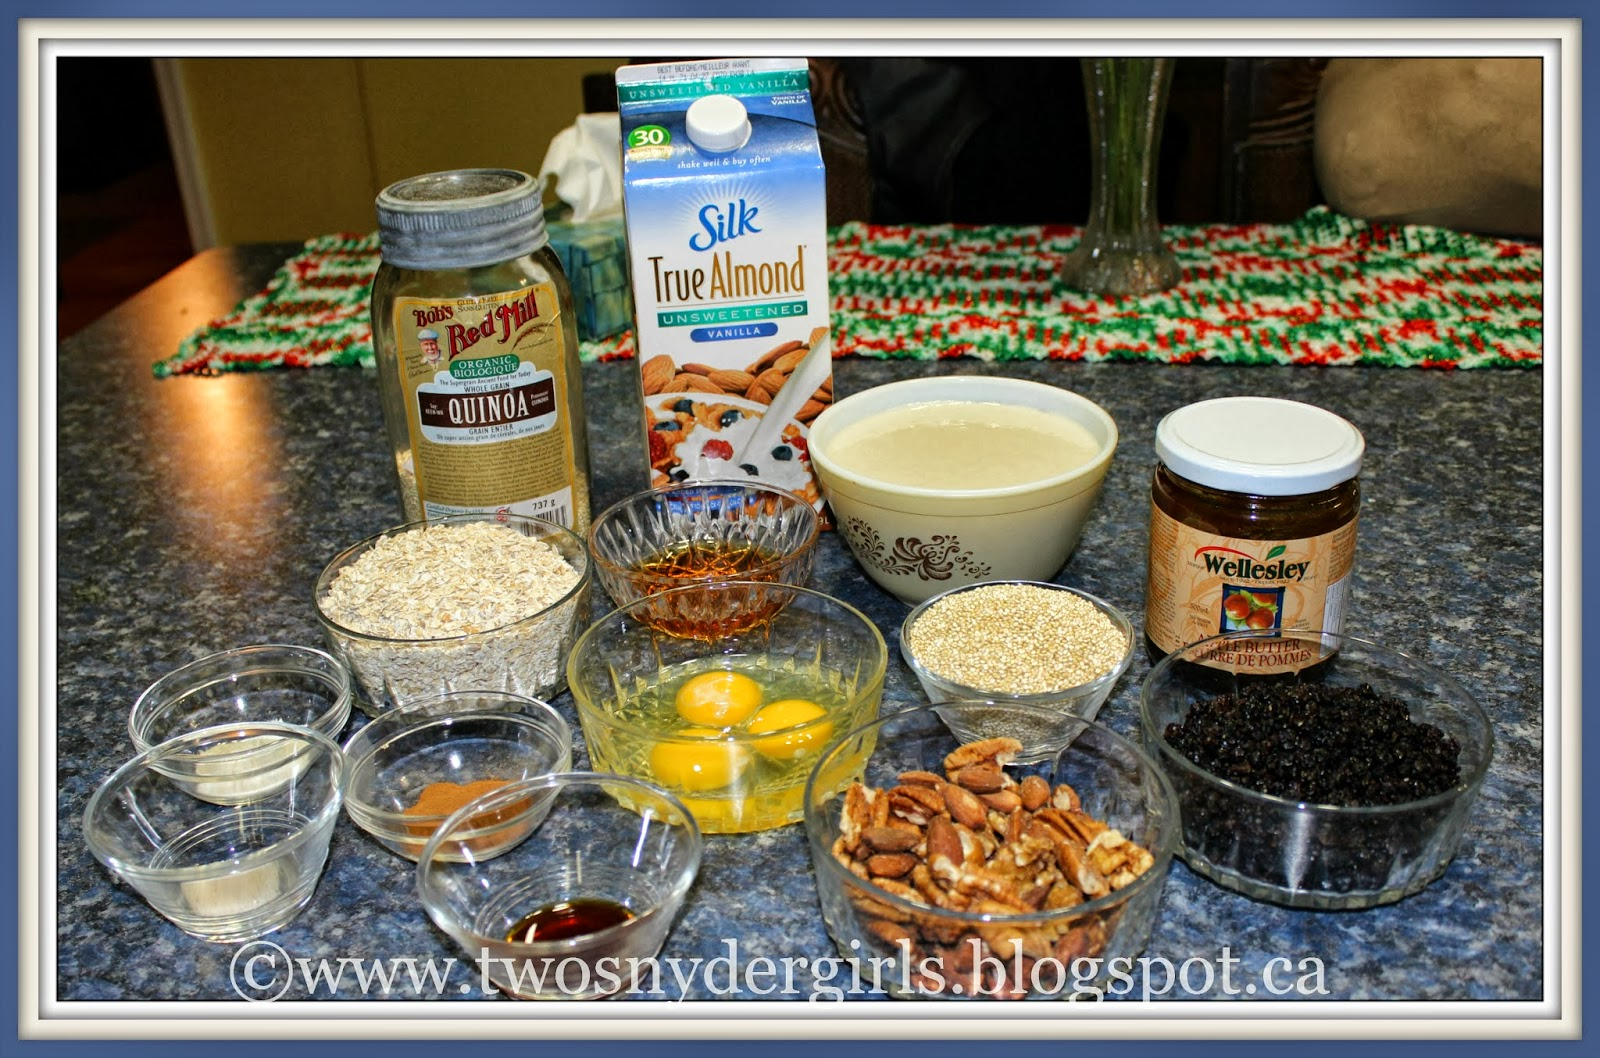 Baking ingredients for Gluten Free Baked Oatmeal and Quinoa